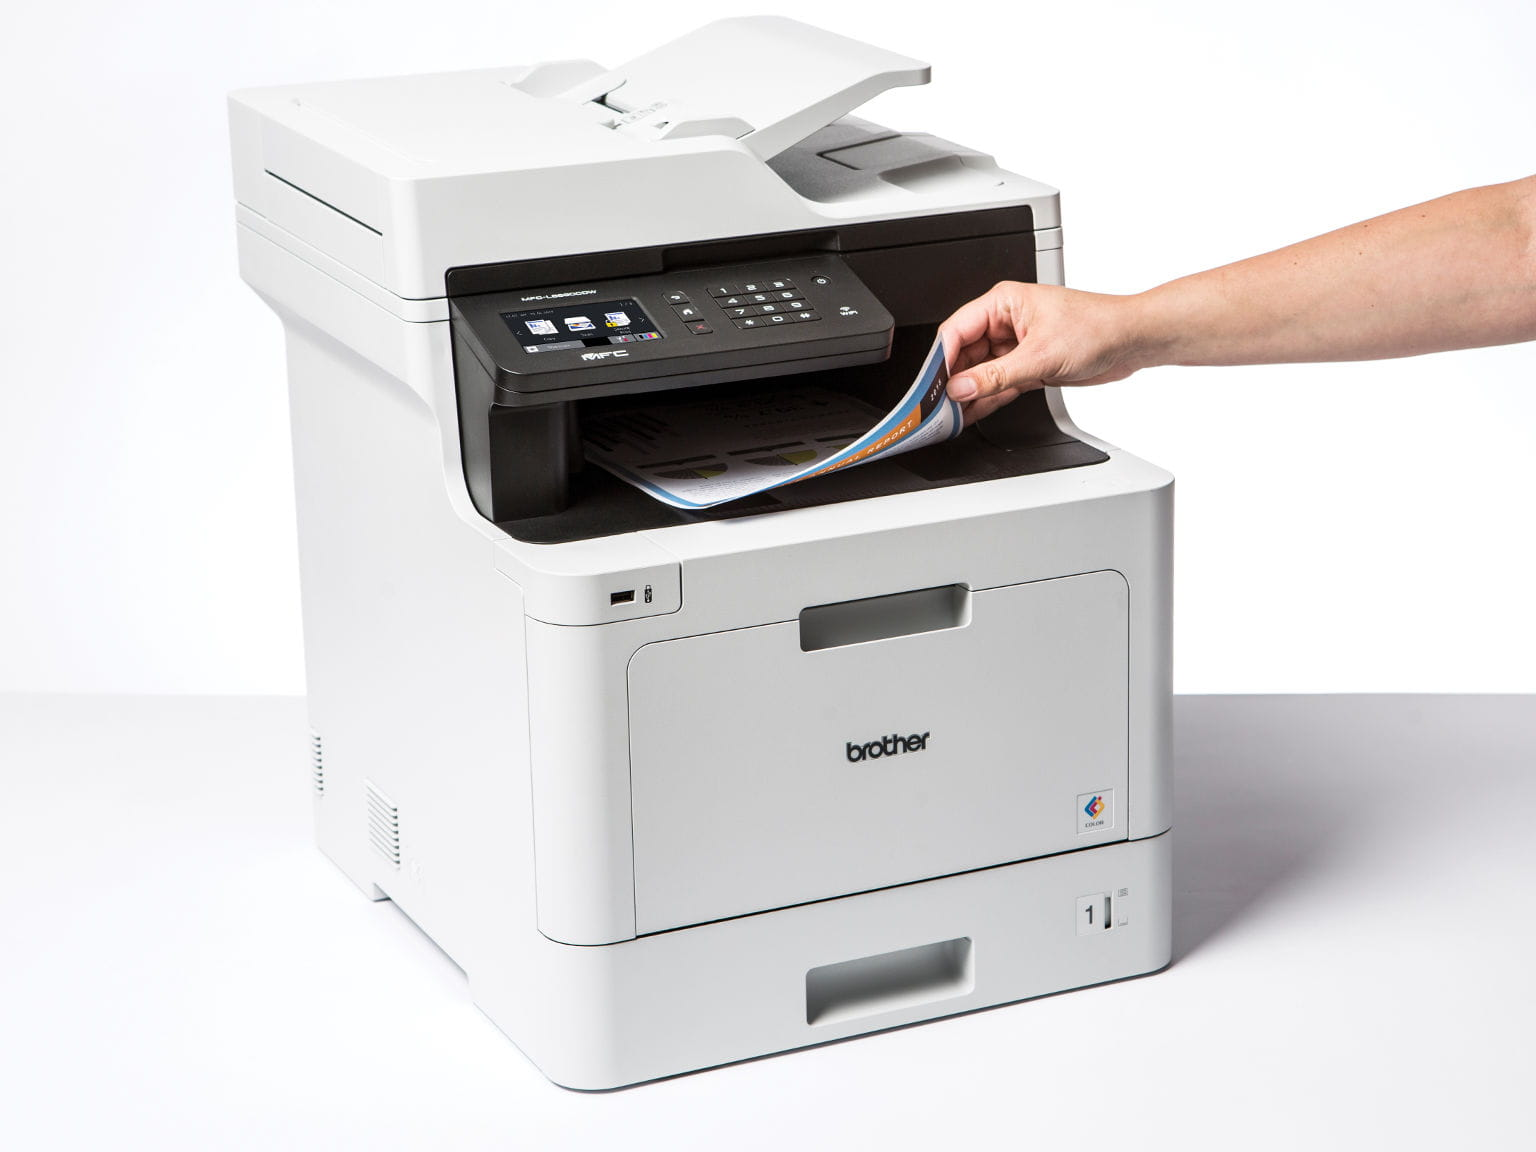 Impresora multifunción láser color MFC-L8690CDW, Brother